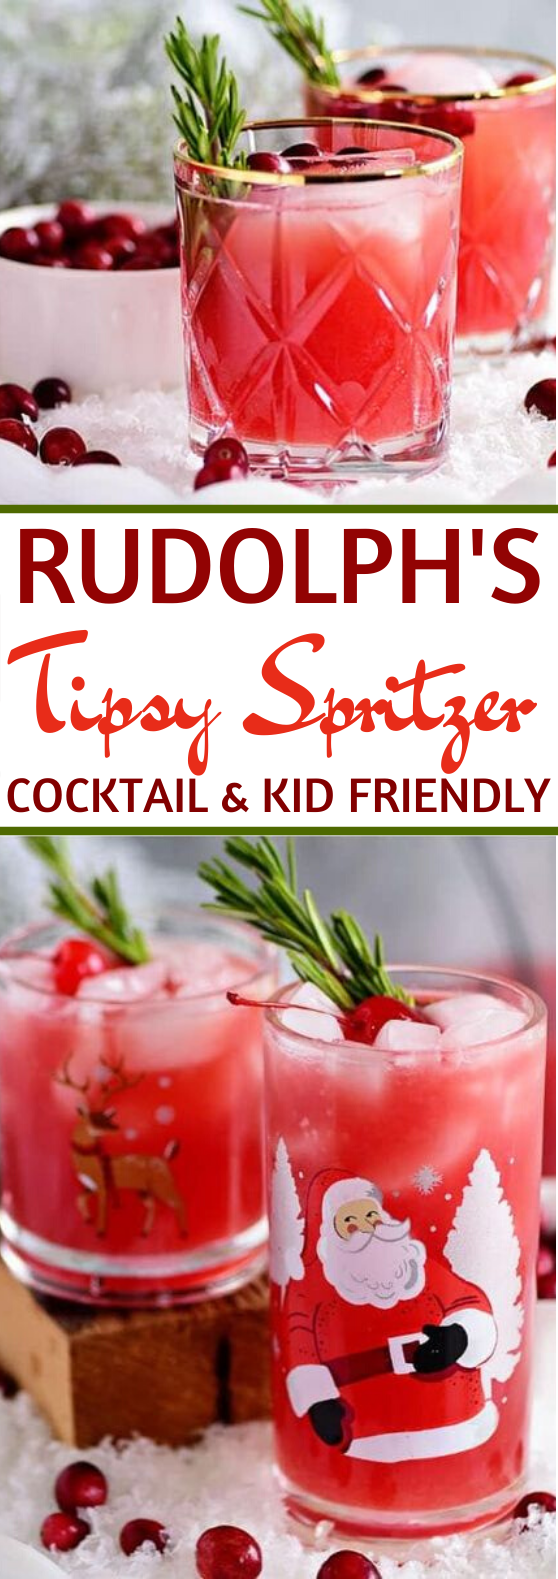 Rudolph's Tipsy Spritzer #drinks #cocktails #christmas #kidfriendly #punch